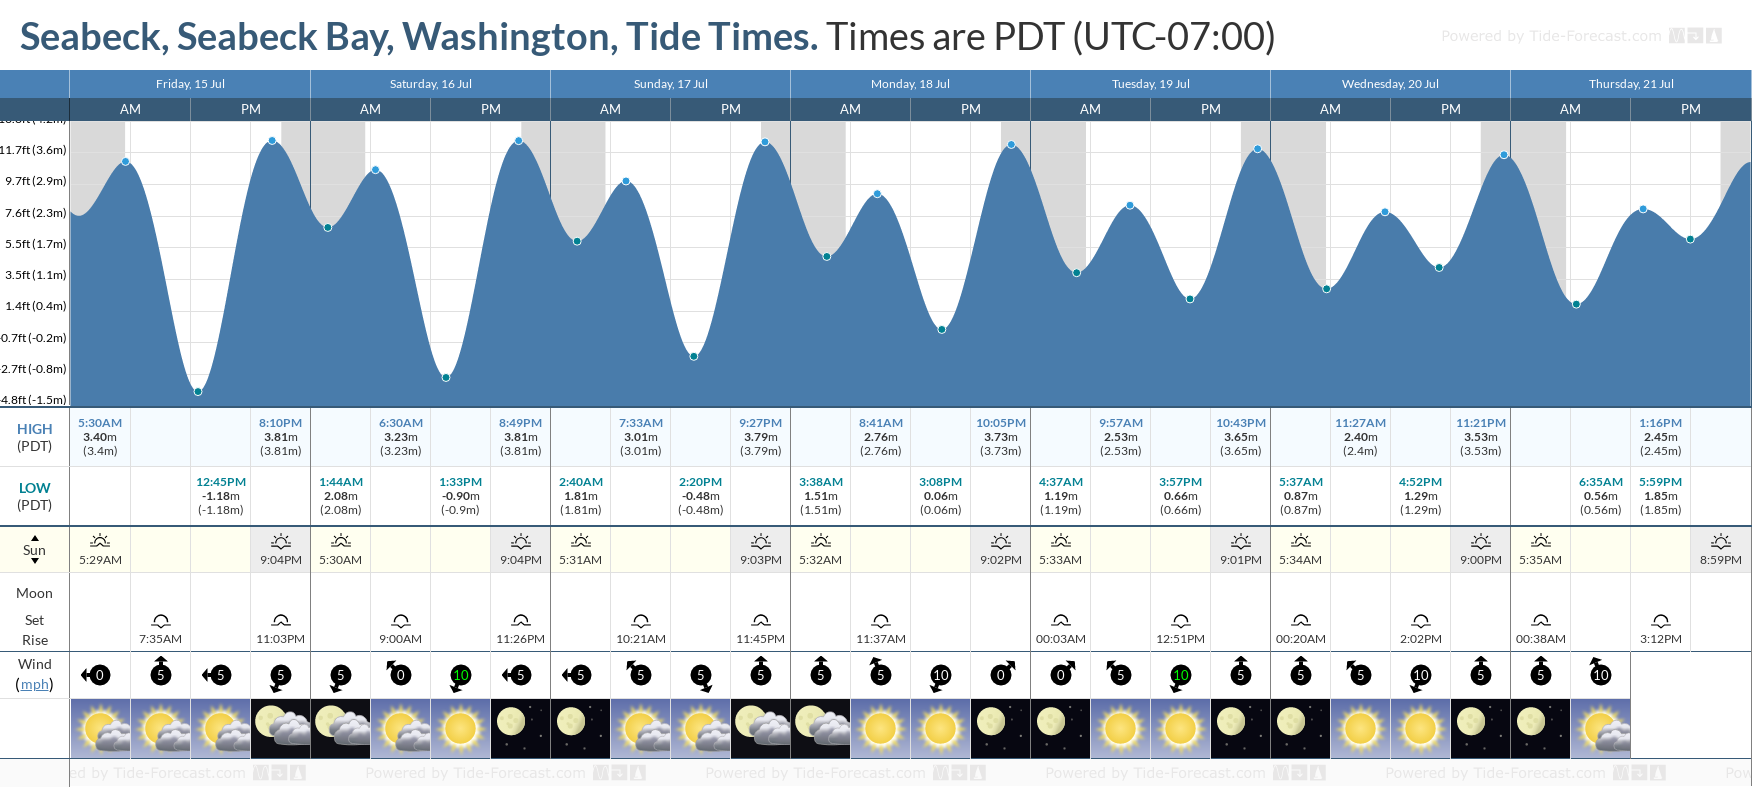 Seabeck, Seabeck Bay, Washington Tide Chart including high and low tide tide times for the next 7 days